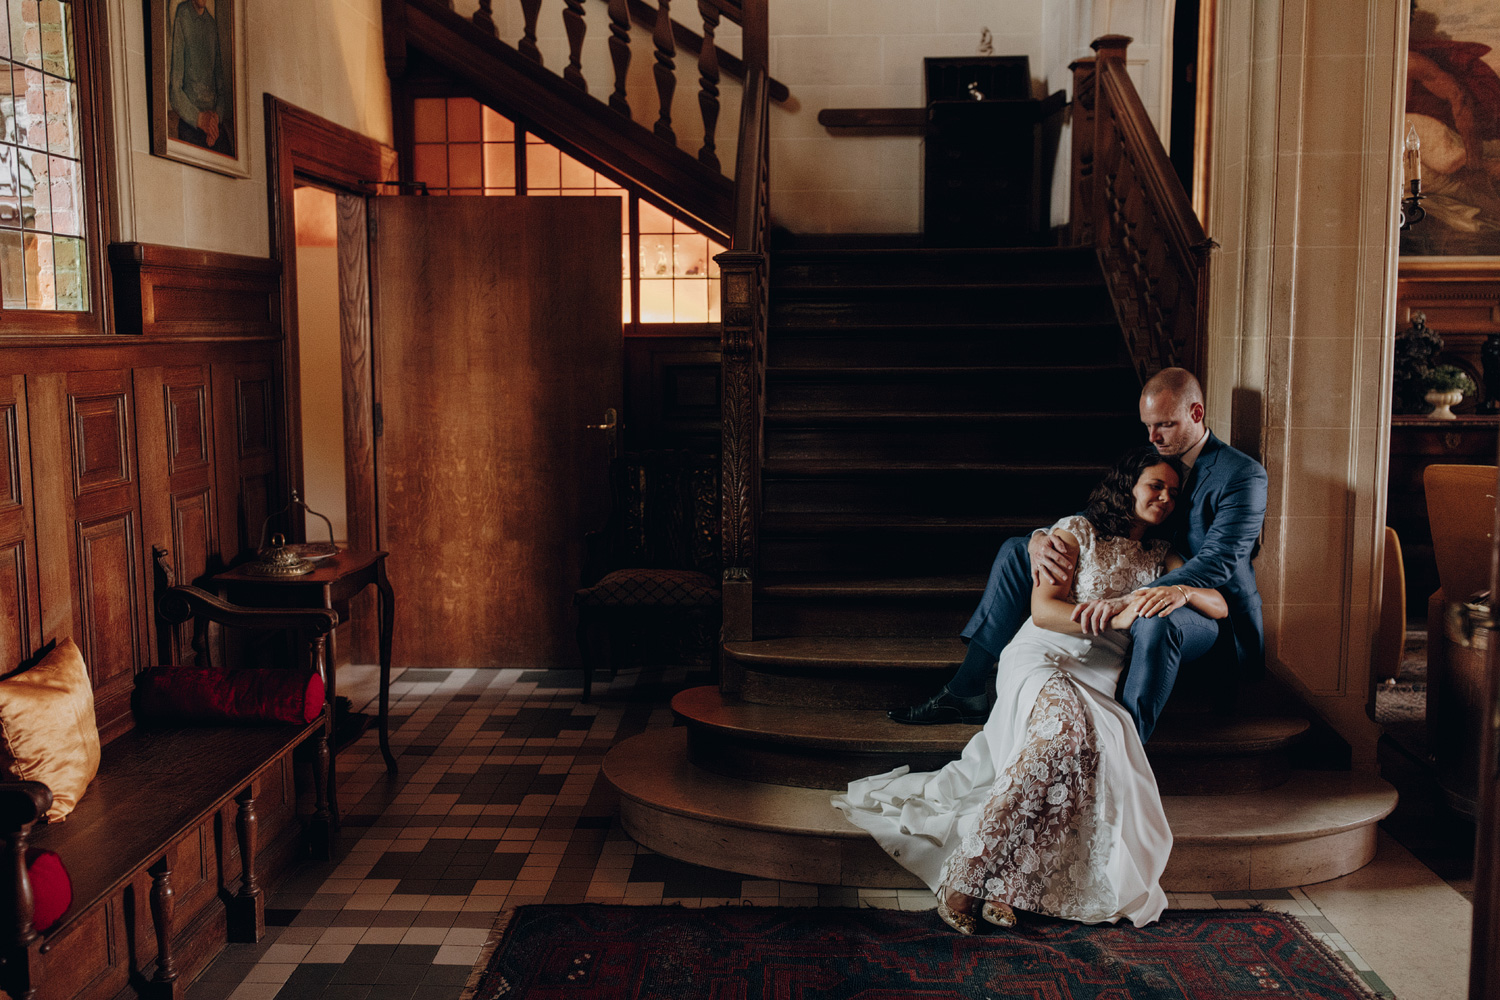 Bride and Groom at stairs in Chateau de Presseux